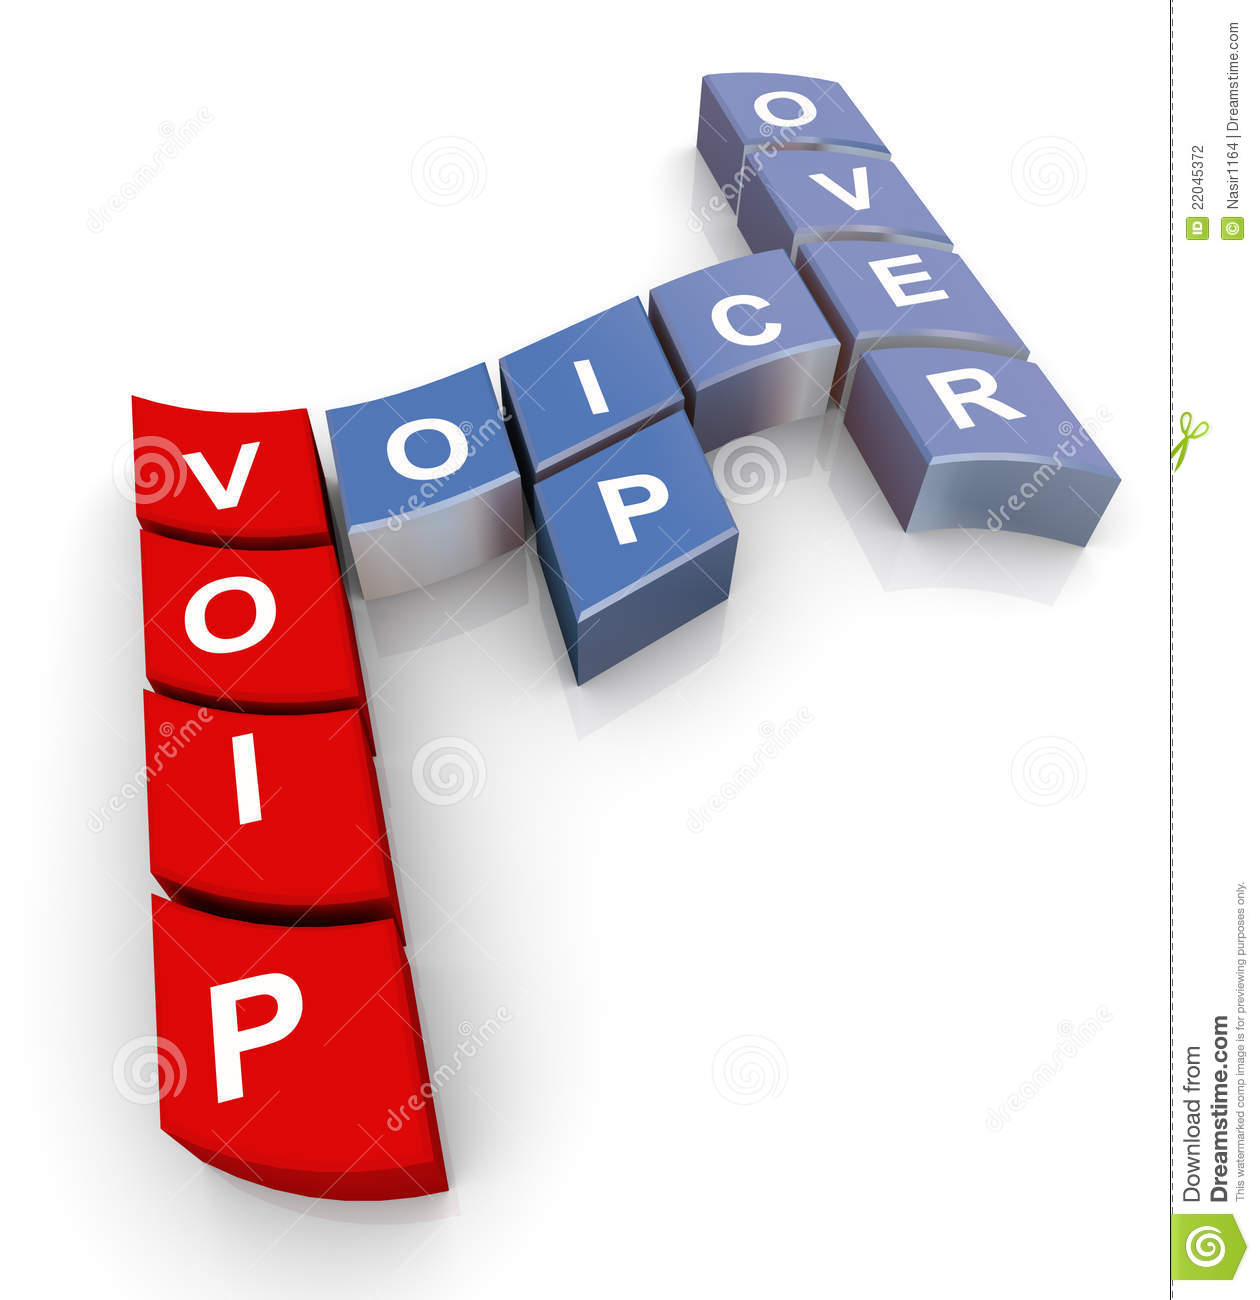 voice over ip business plan